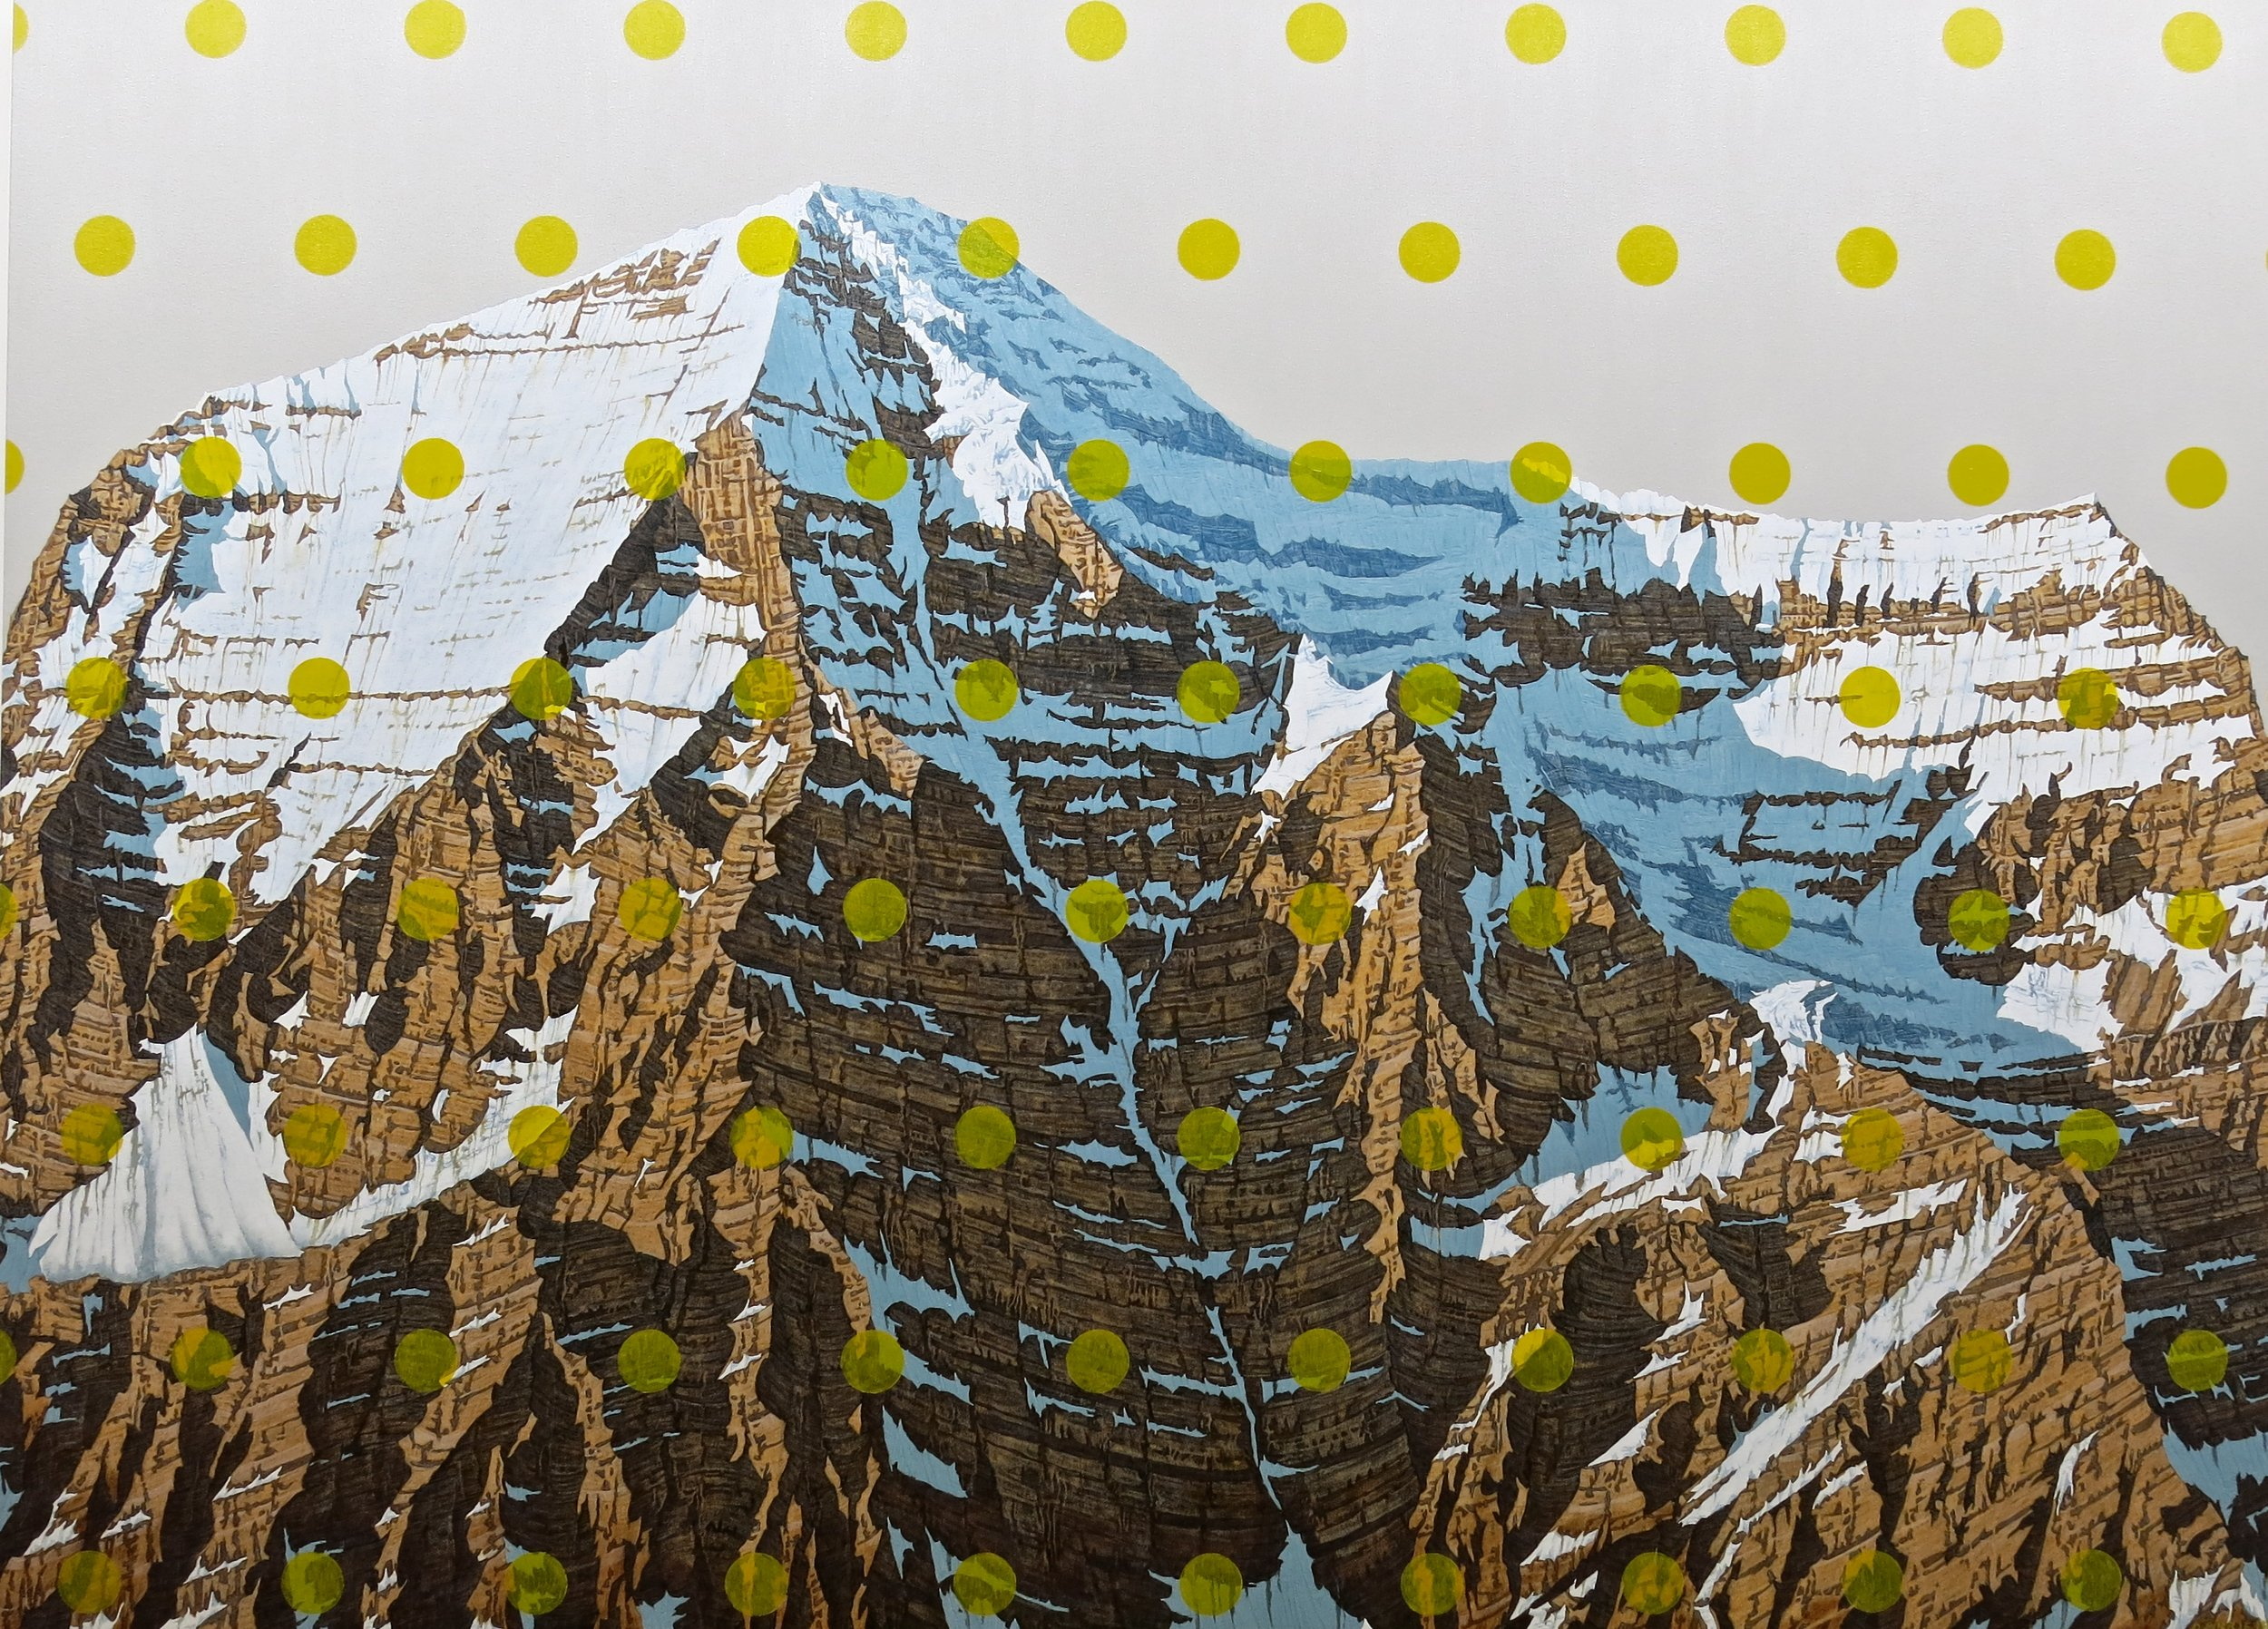 CoCo Artist David P. depicts Mt. Rainier in a realistic way, but overlaid with pop-art dots.